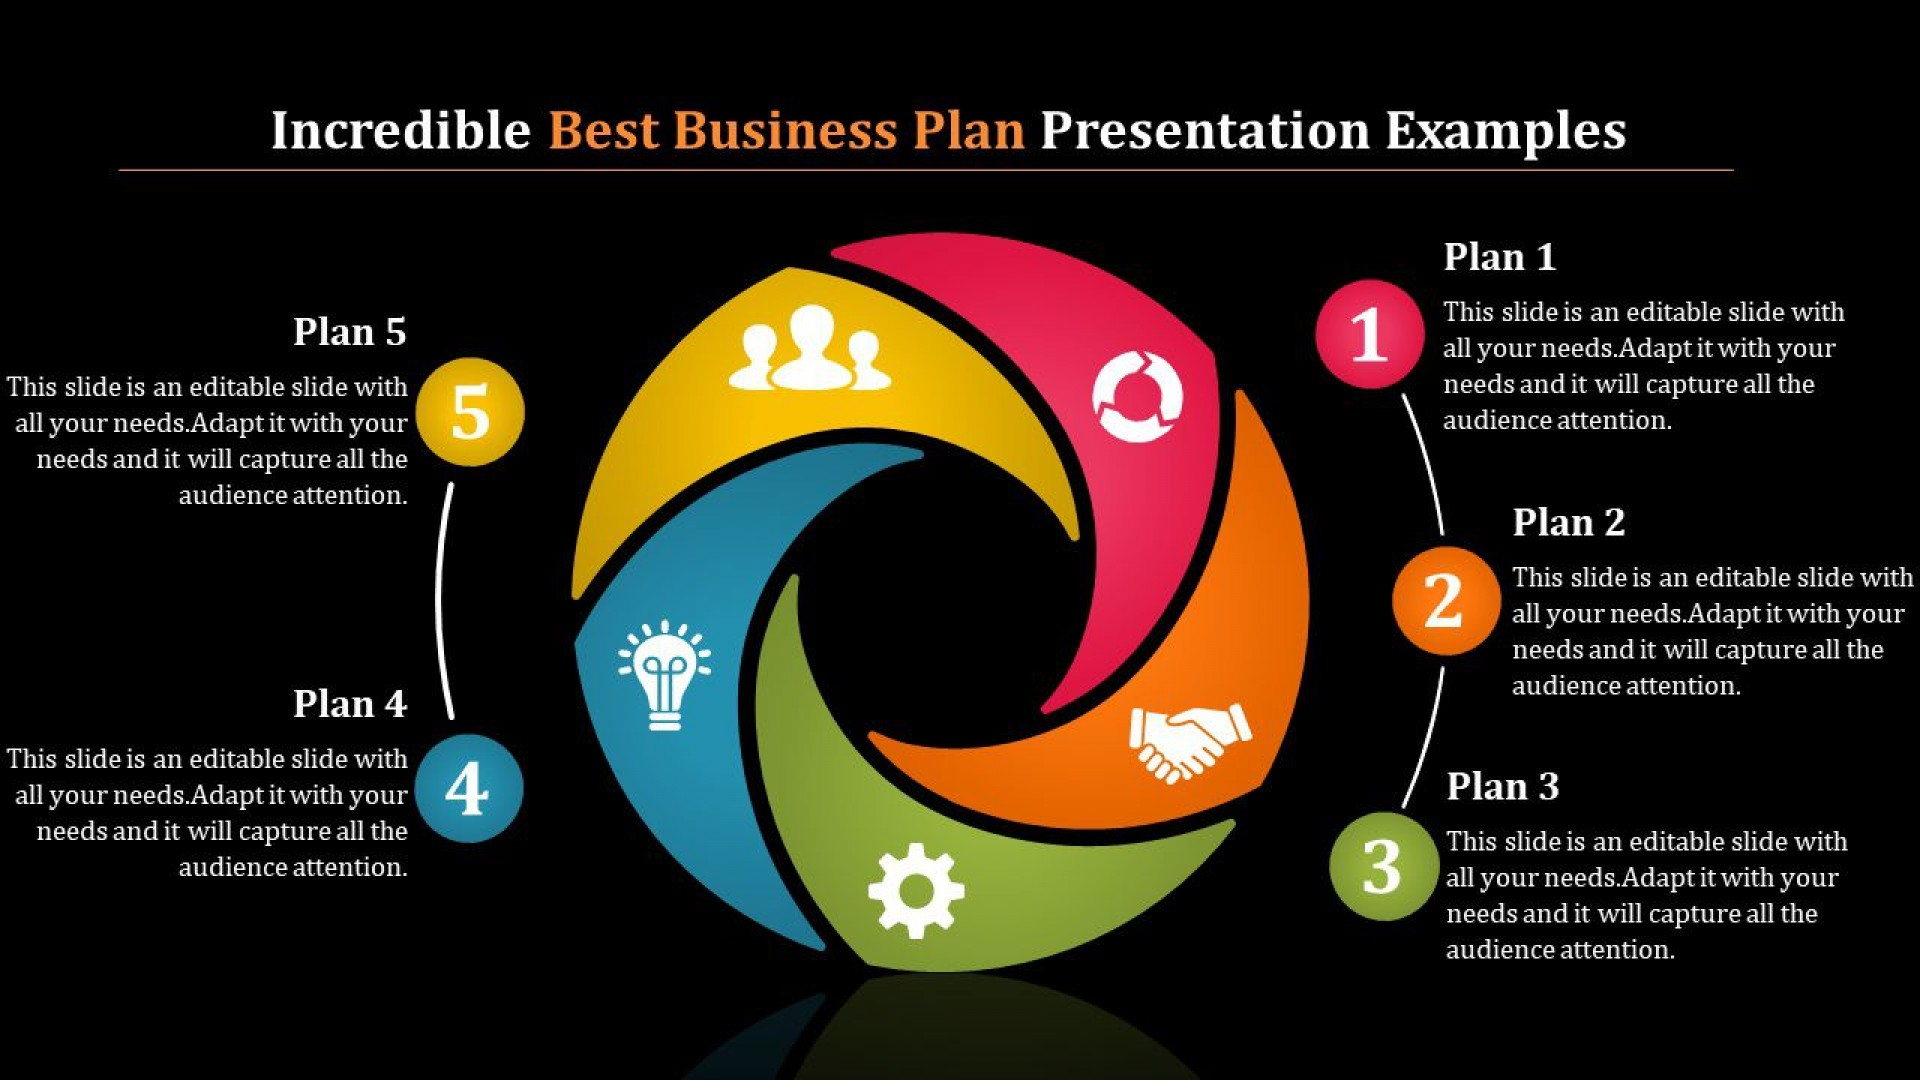 002 Beautiful Best Busines Plan Template High Resolution  Ppt Free Download1920